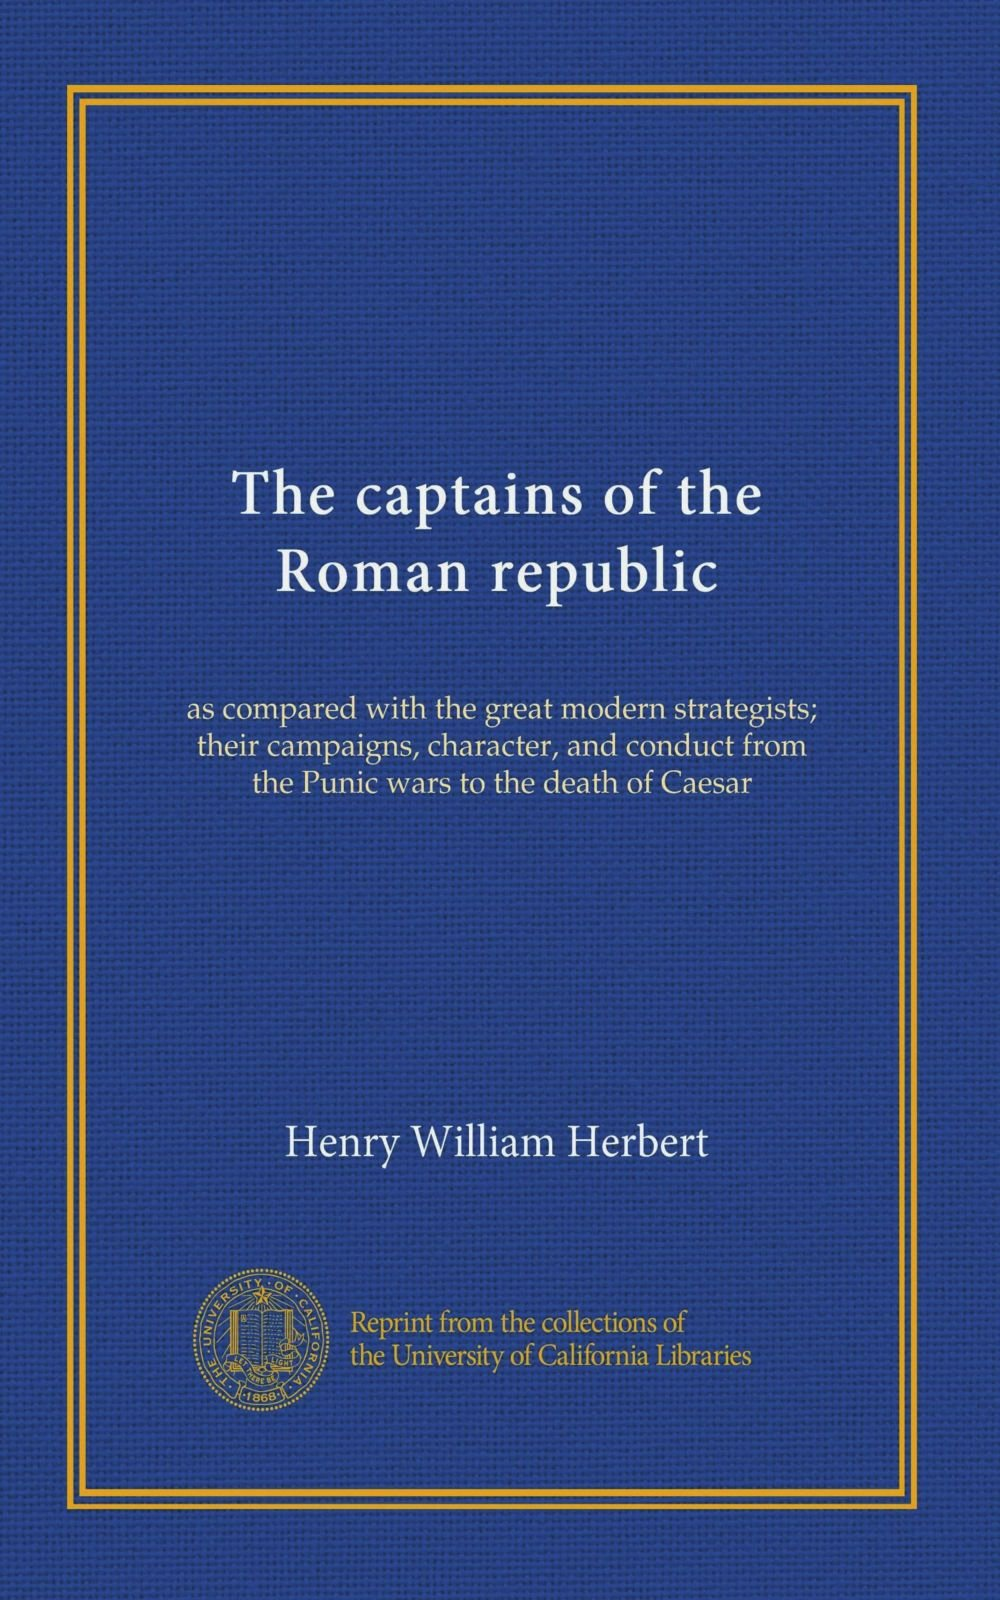 The captains of the Roman republic: as compared with the great modern strategists; their campaigns, character, and conduct from the Punic wars to the death of Caesar ePub fb2 ebook